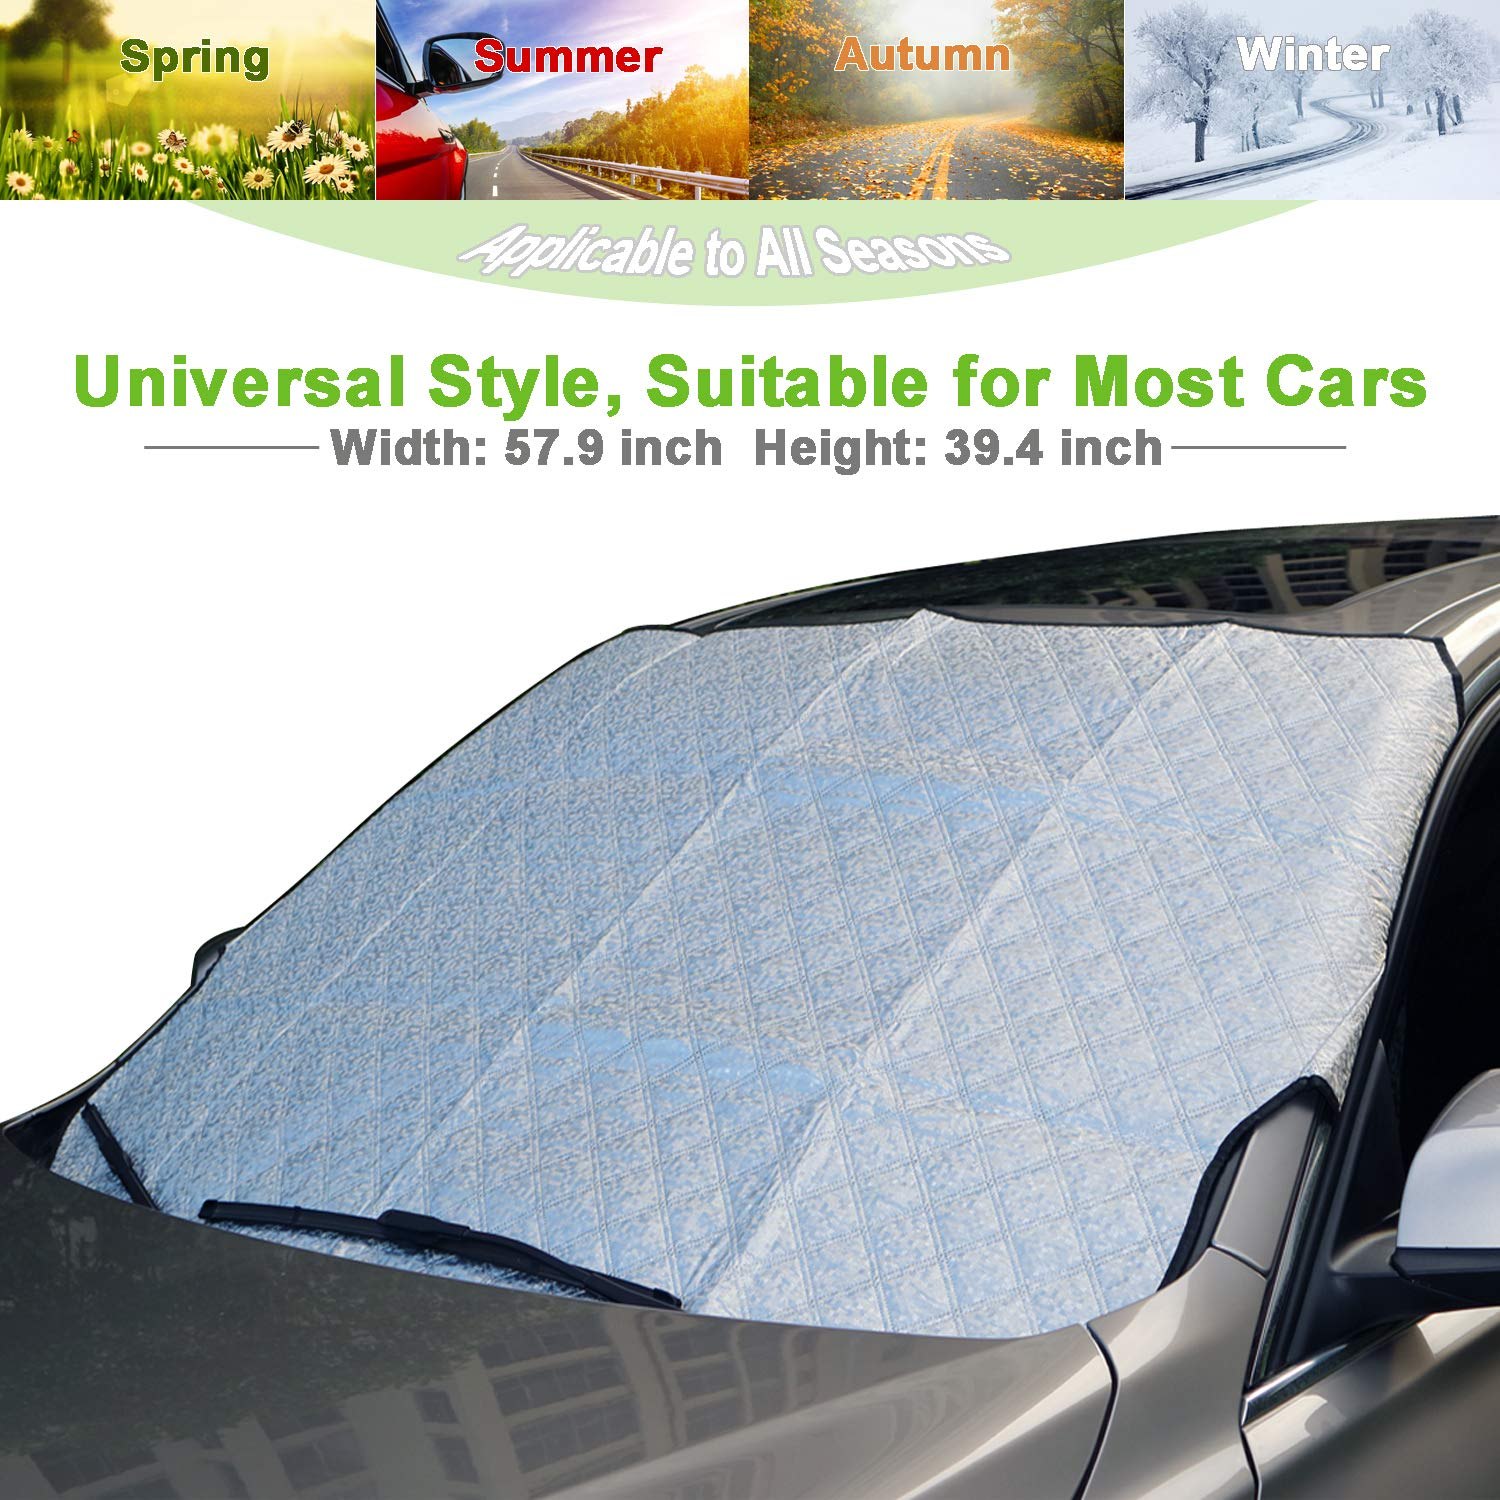 AMEIQ Car Windshield Snow Cover, Sun Shade, Front Window Sunshade, All Seasons Windscreen Protector, Best for Most Car Auto Vehicle SUV (THICK) CS